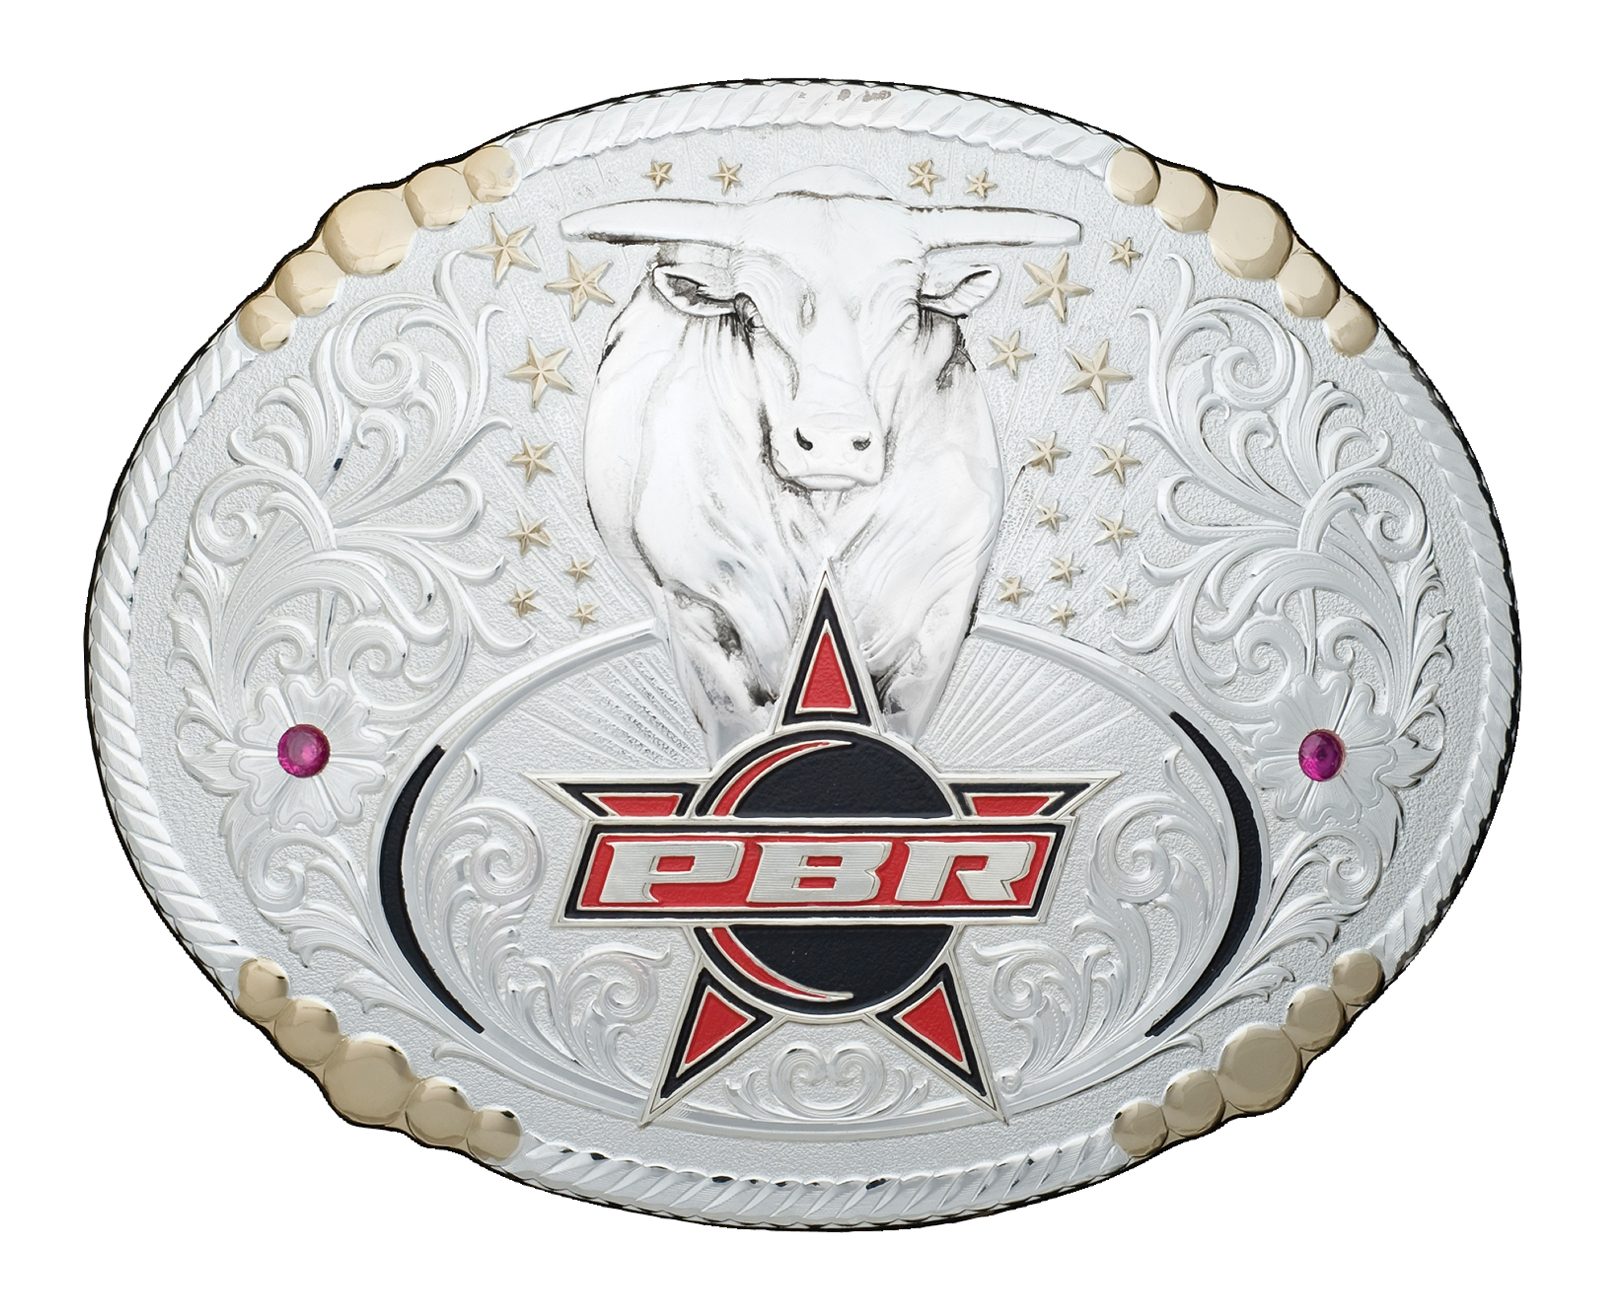 Montana Silversmiths PBR Bull Two Tone Silver Belt Buckle